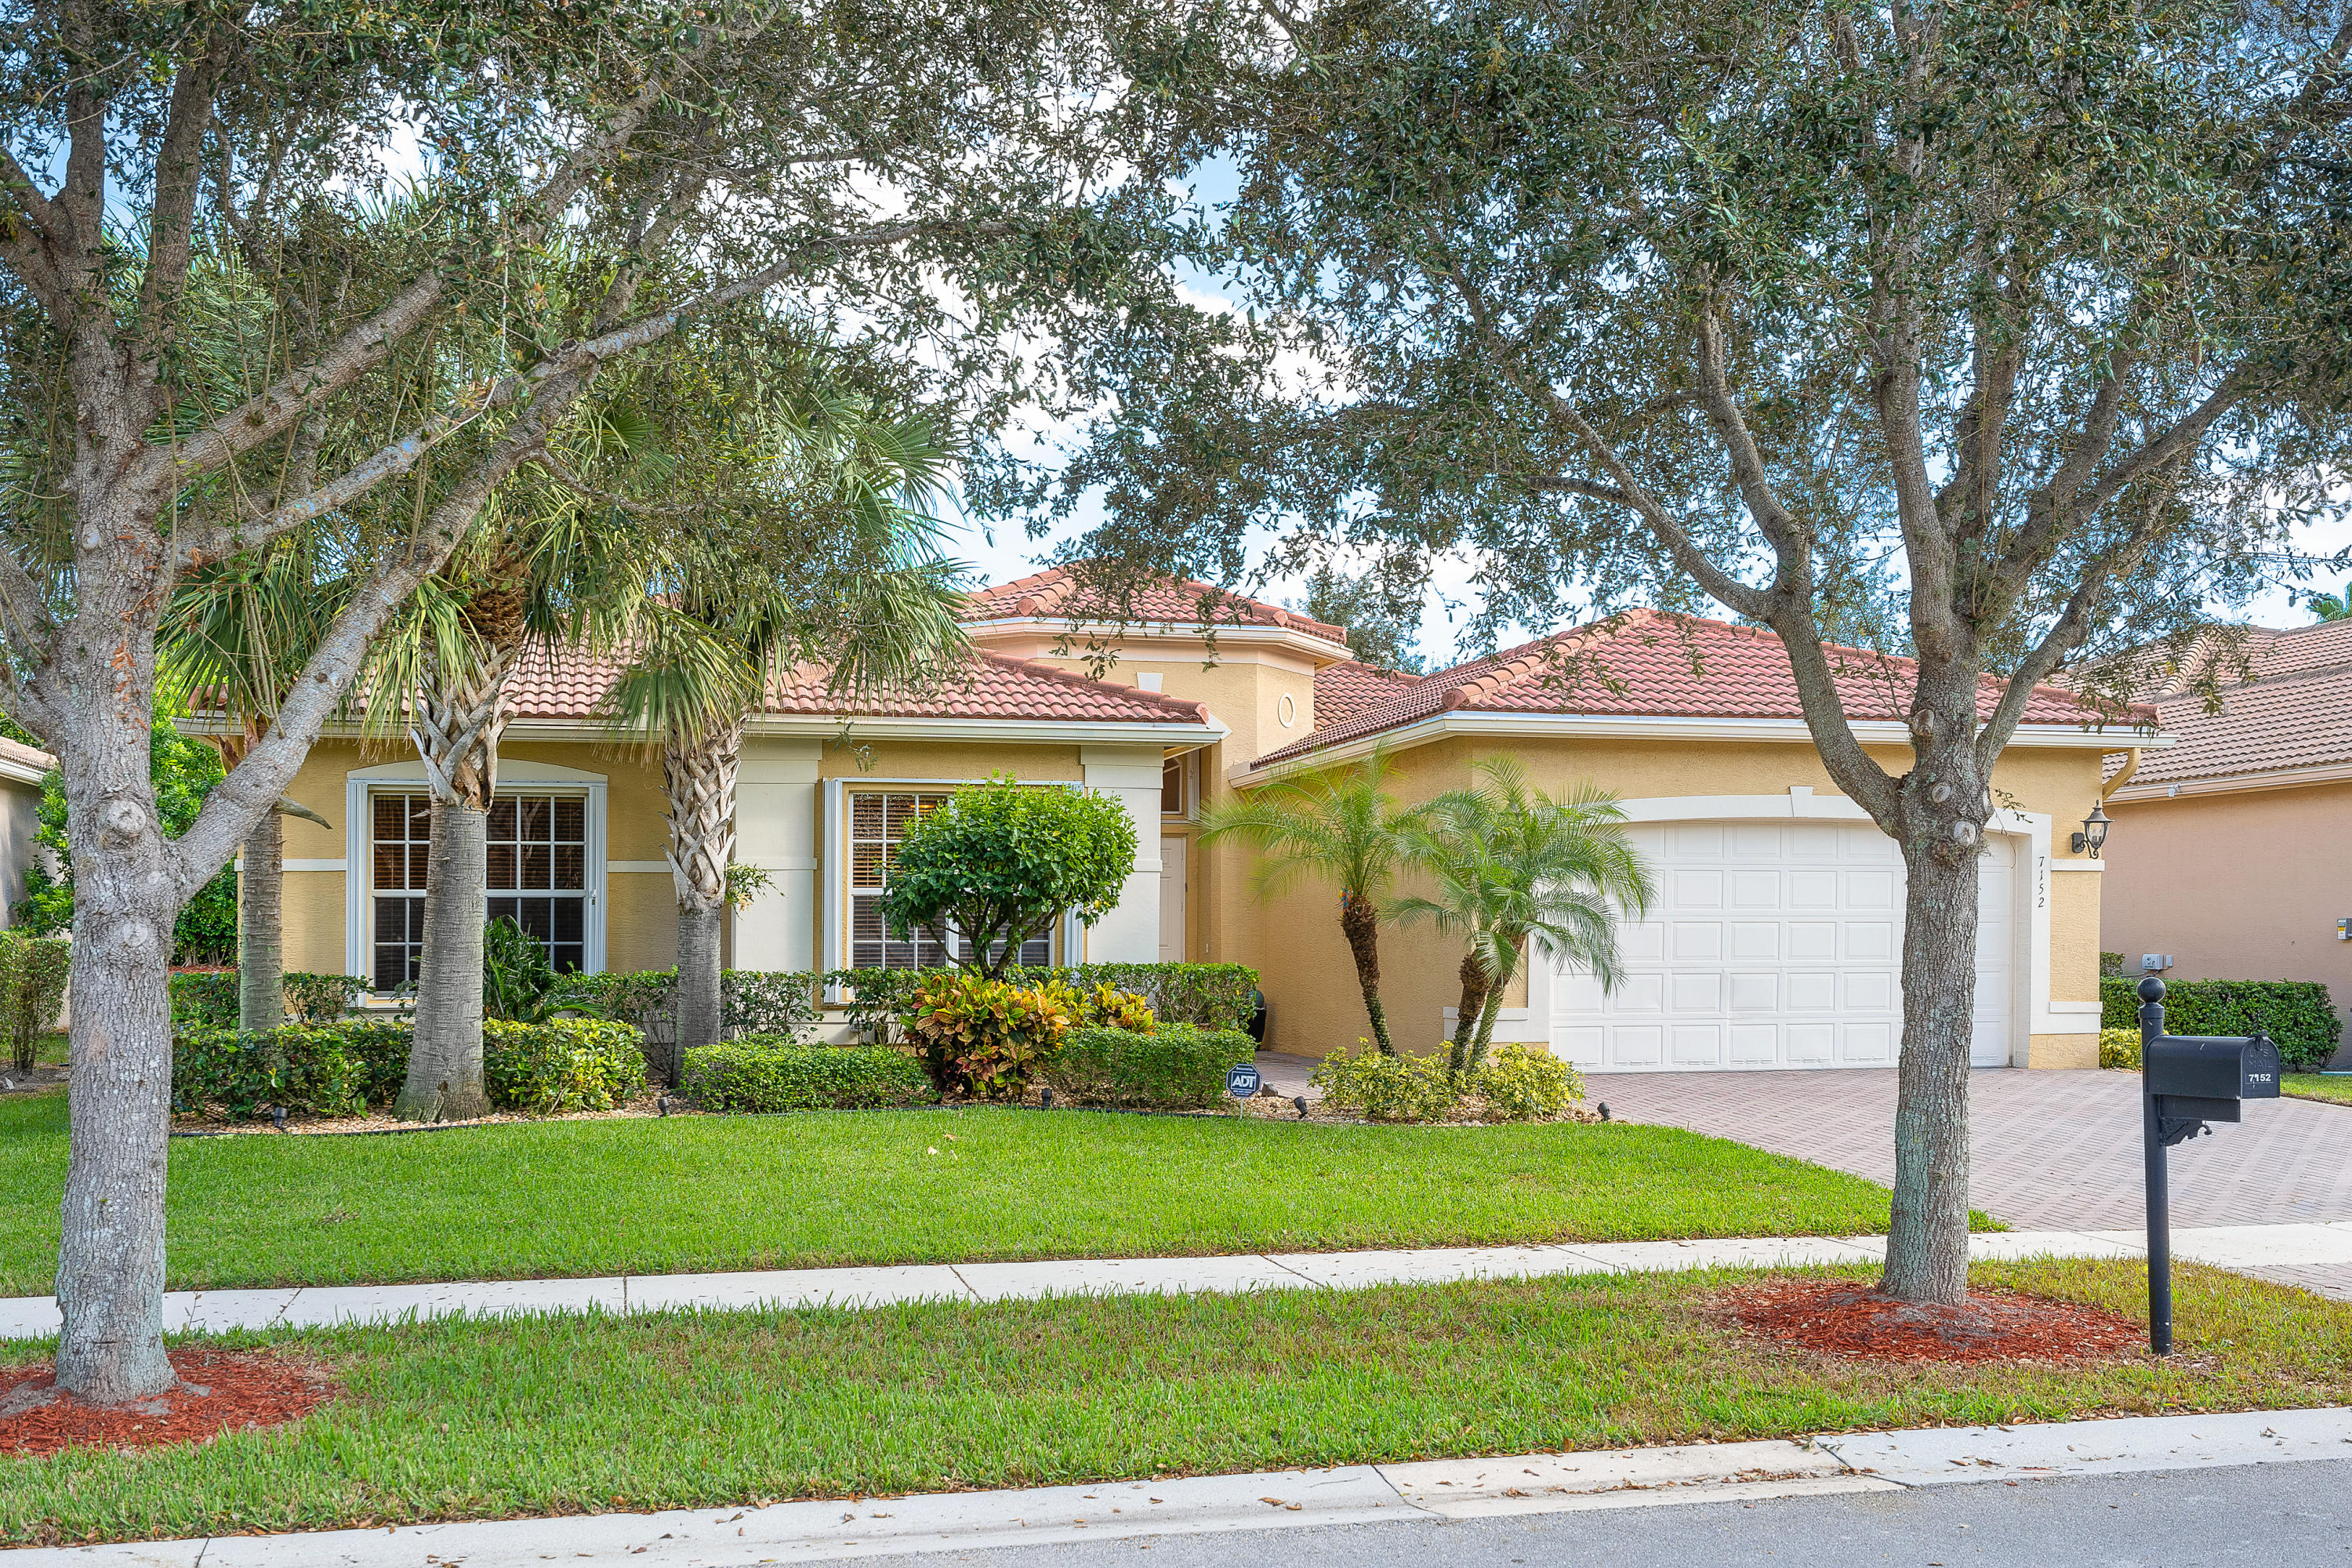 Valencia Pointe home 7152 Corning Circle Boynton Beach FL 33437